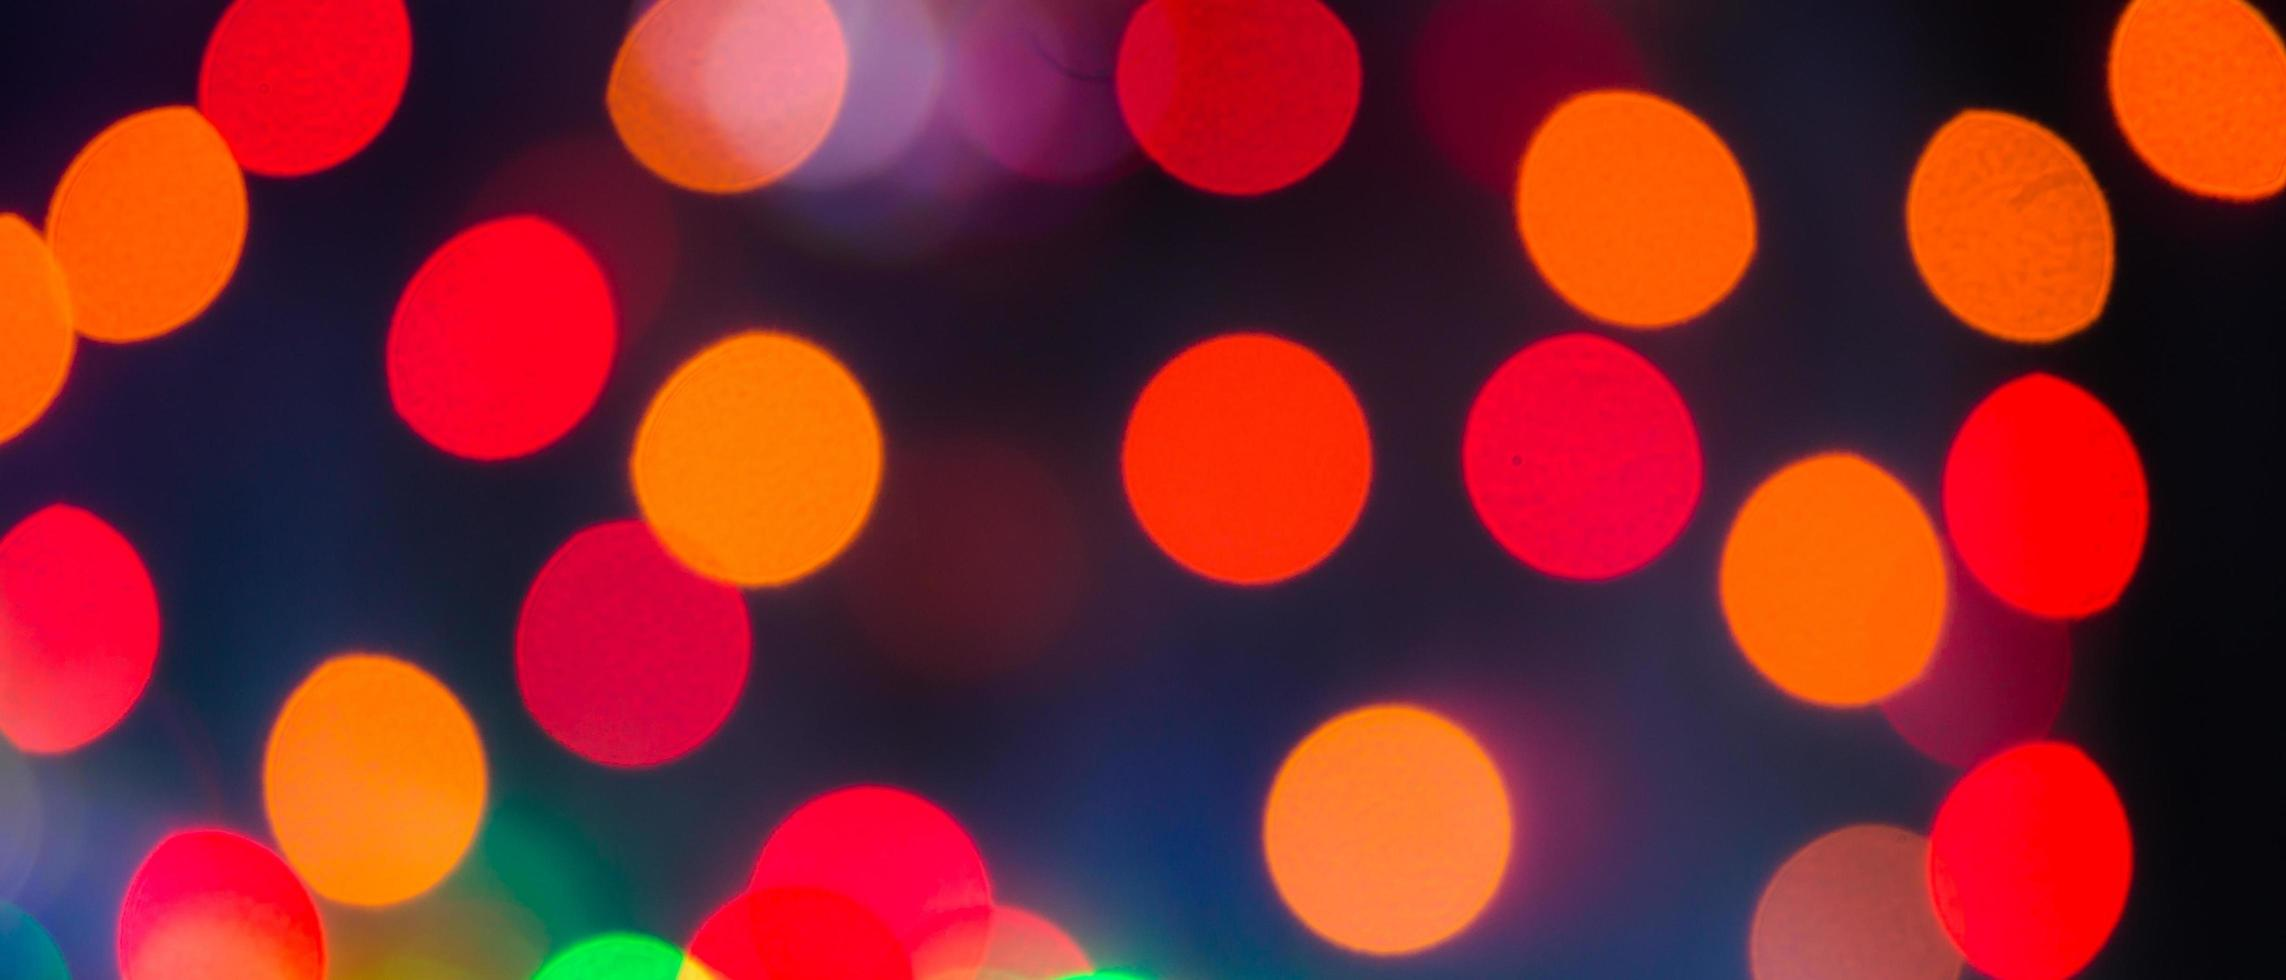 Colorful red and orange bokeh photo